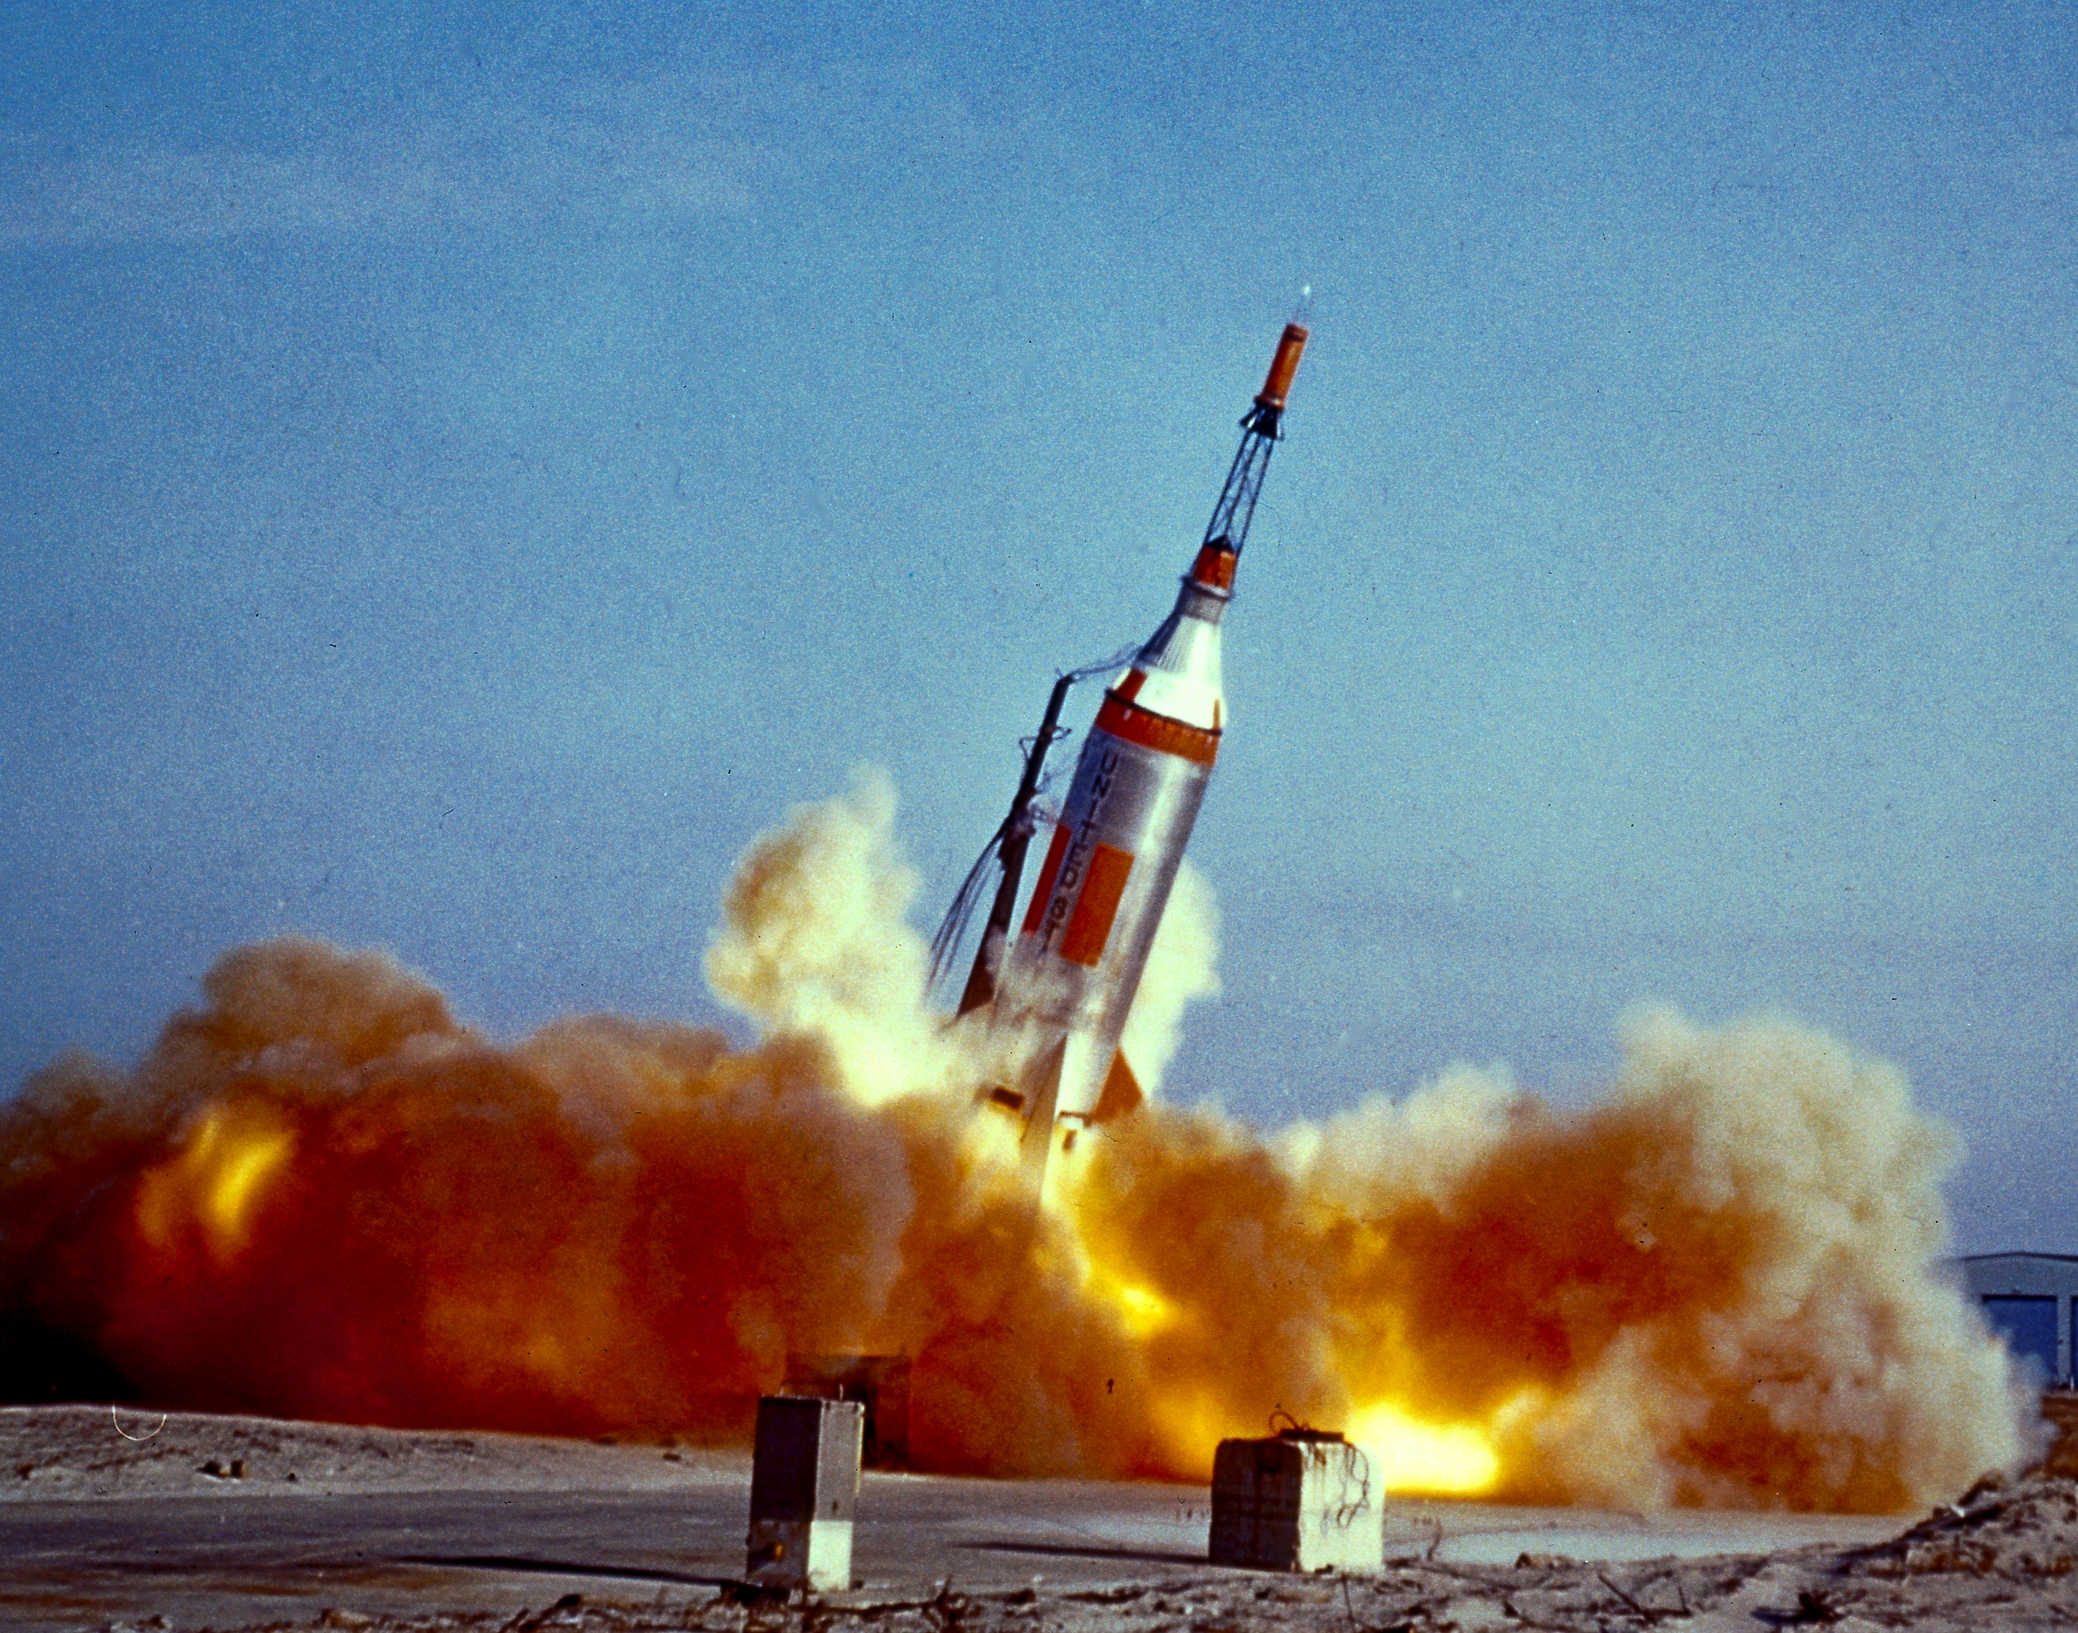 nasa rocket failure - photo #9